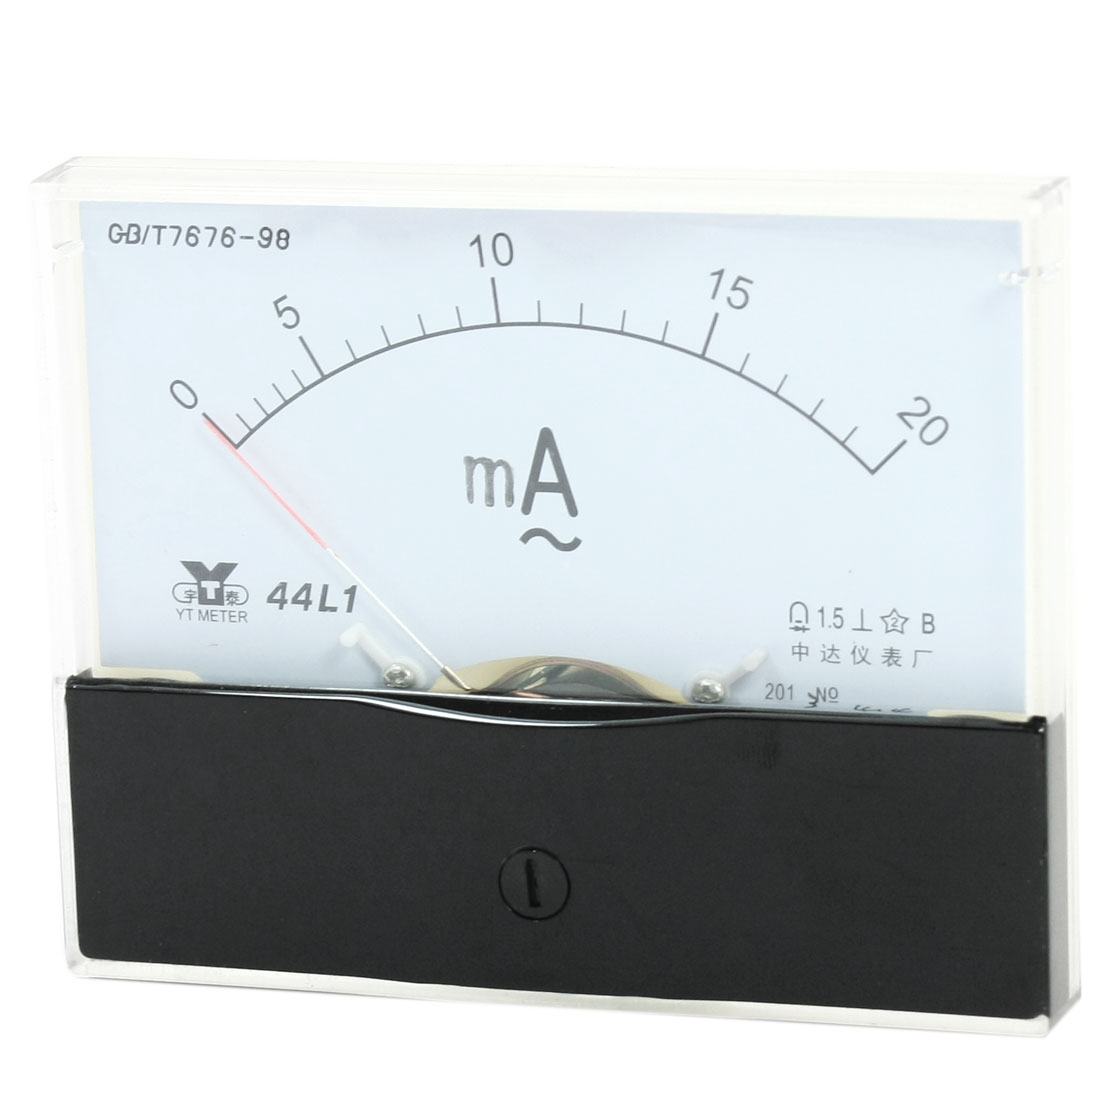 Rectangle Measurement Tool Analog Panel Ammeter Gauge AC 0 - 20mA Measuring Range 44L1